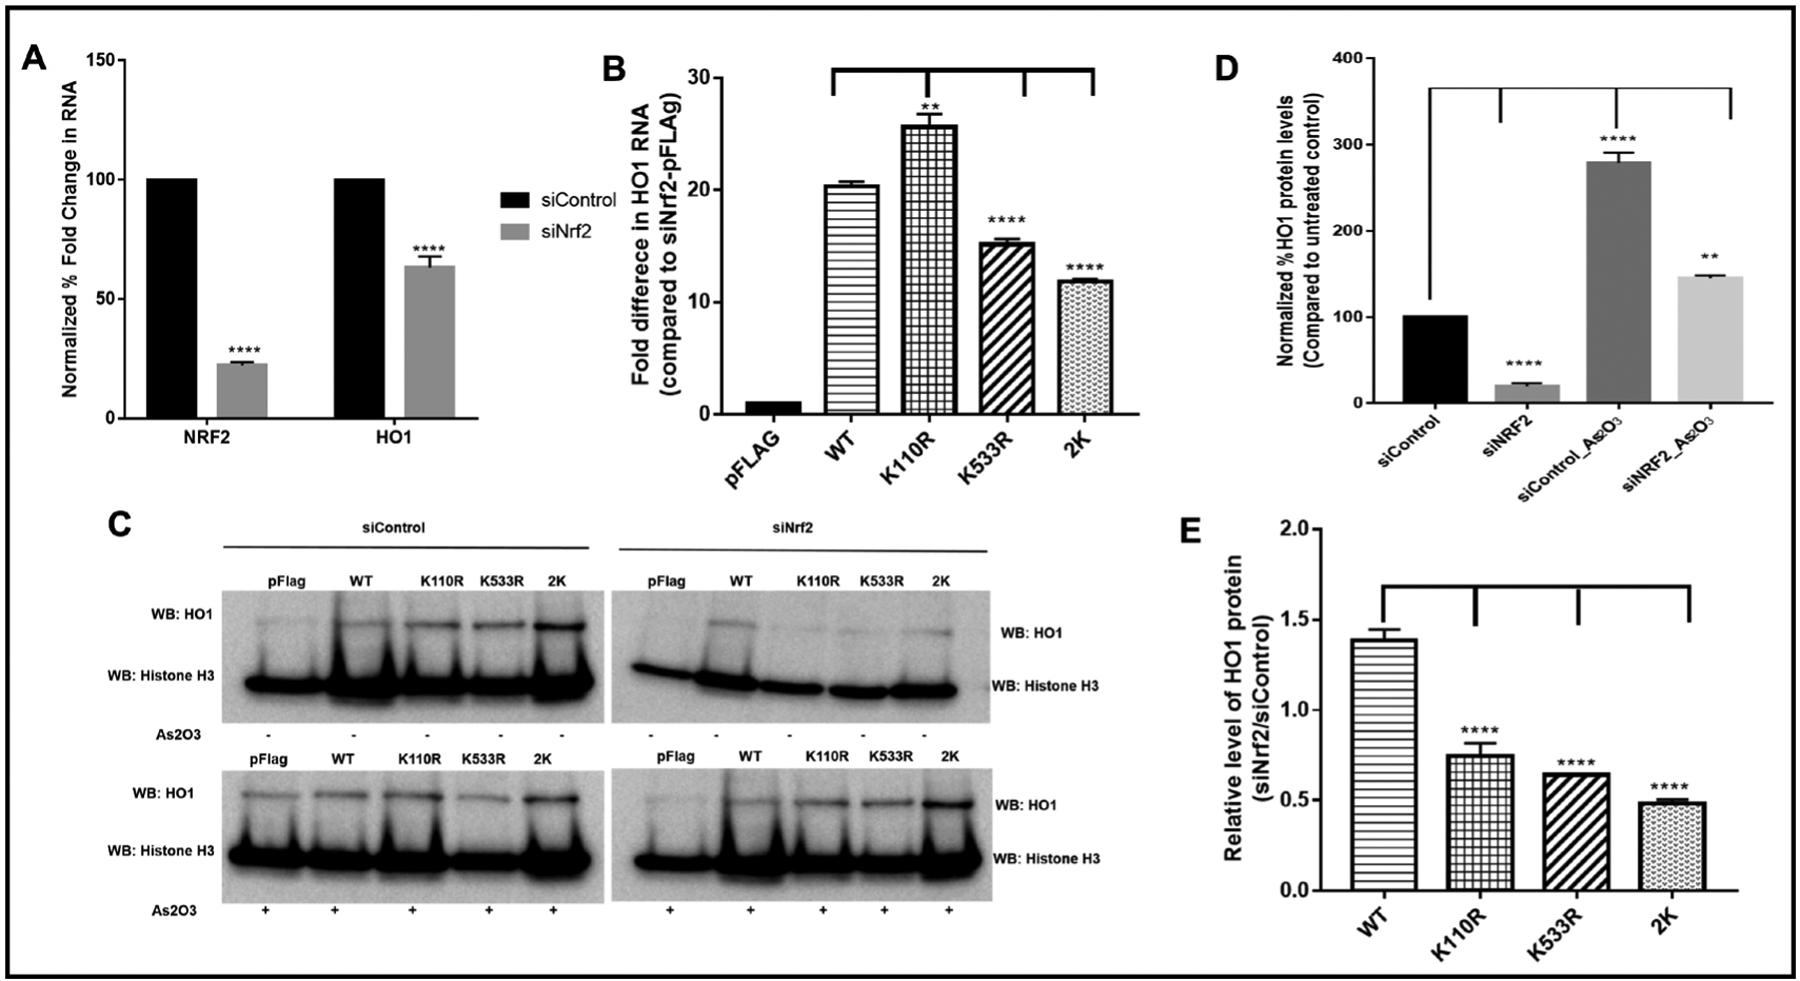 Nrf2-dependent gene transcription of Heme Oxygenase 1 (HO-1) gene is reduced in the absence of K 110 and K 533 of Nrf2 protein. To study the significance of the SUMO-acceptor lysine in Nrf2 rescue experiments were performed using plasmid expressing either wild type Flag-hNrf2 (WT) or different mutant Flag-hNrf2 (K110R, K533R or 2K (K110R/K533R) double mutant) in the HEK293T cells treated with siRNA against Nrf2. pCMV-Flag vector (pFlag) alone was used as a control. A, shown is real-time RT-PCR analysis of the levels of Nrf2 and HO-1 mRNAs in HEK293T cells treated with control siRNA or Nrf2 siRNA. 18s rRNA mRNA was used as a normalization control. Results are the mean ± S.E. (n = 3). **** indicates statistical significance, p